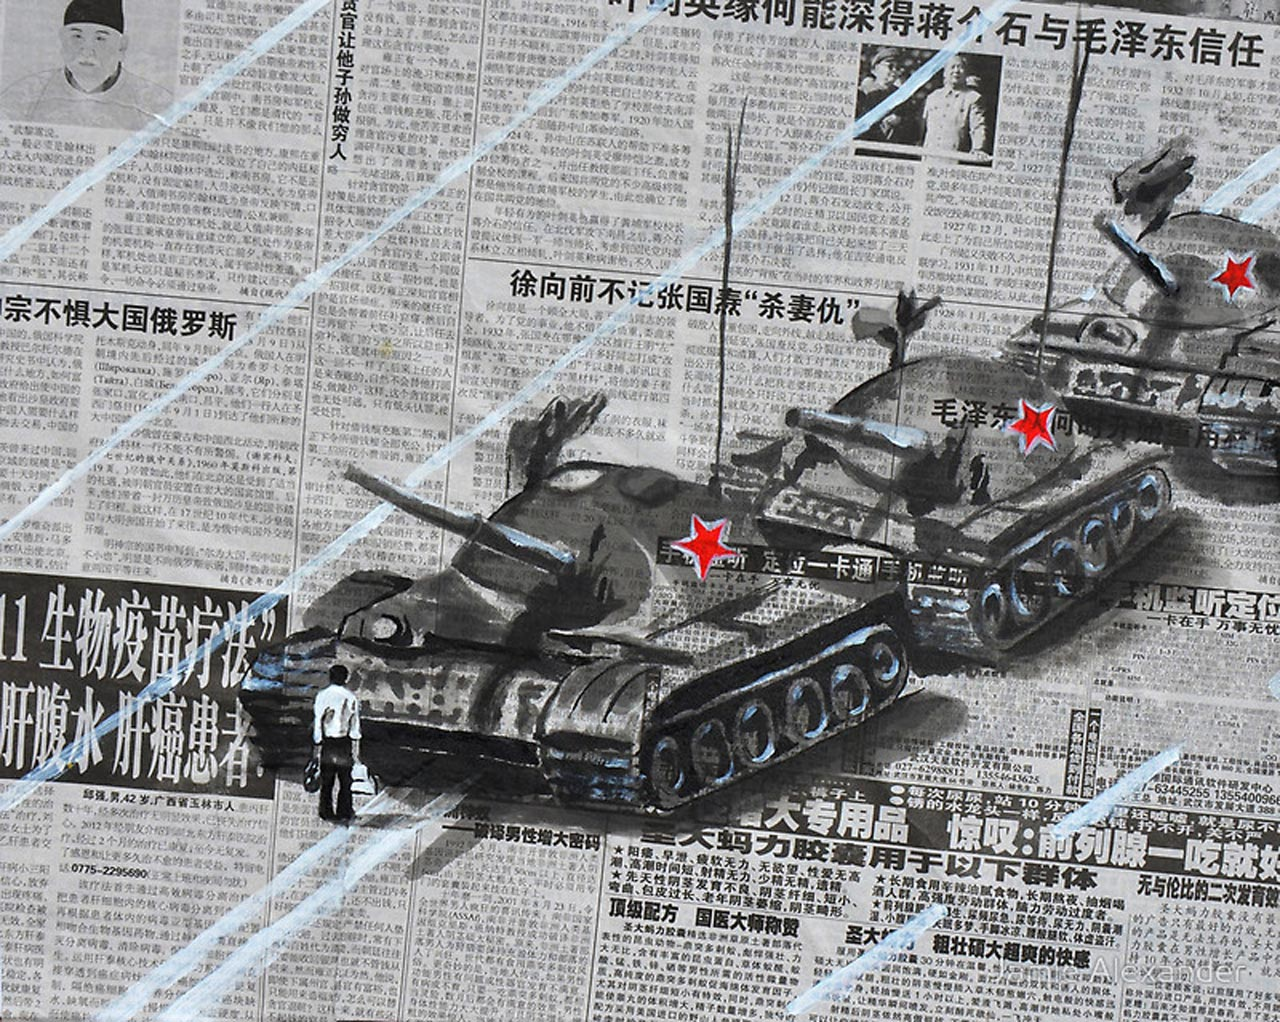 tank-man-of-tiananmen-art-prints-by-jamie-alexander